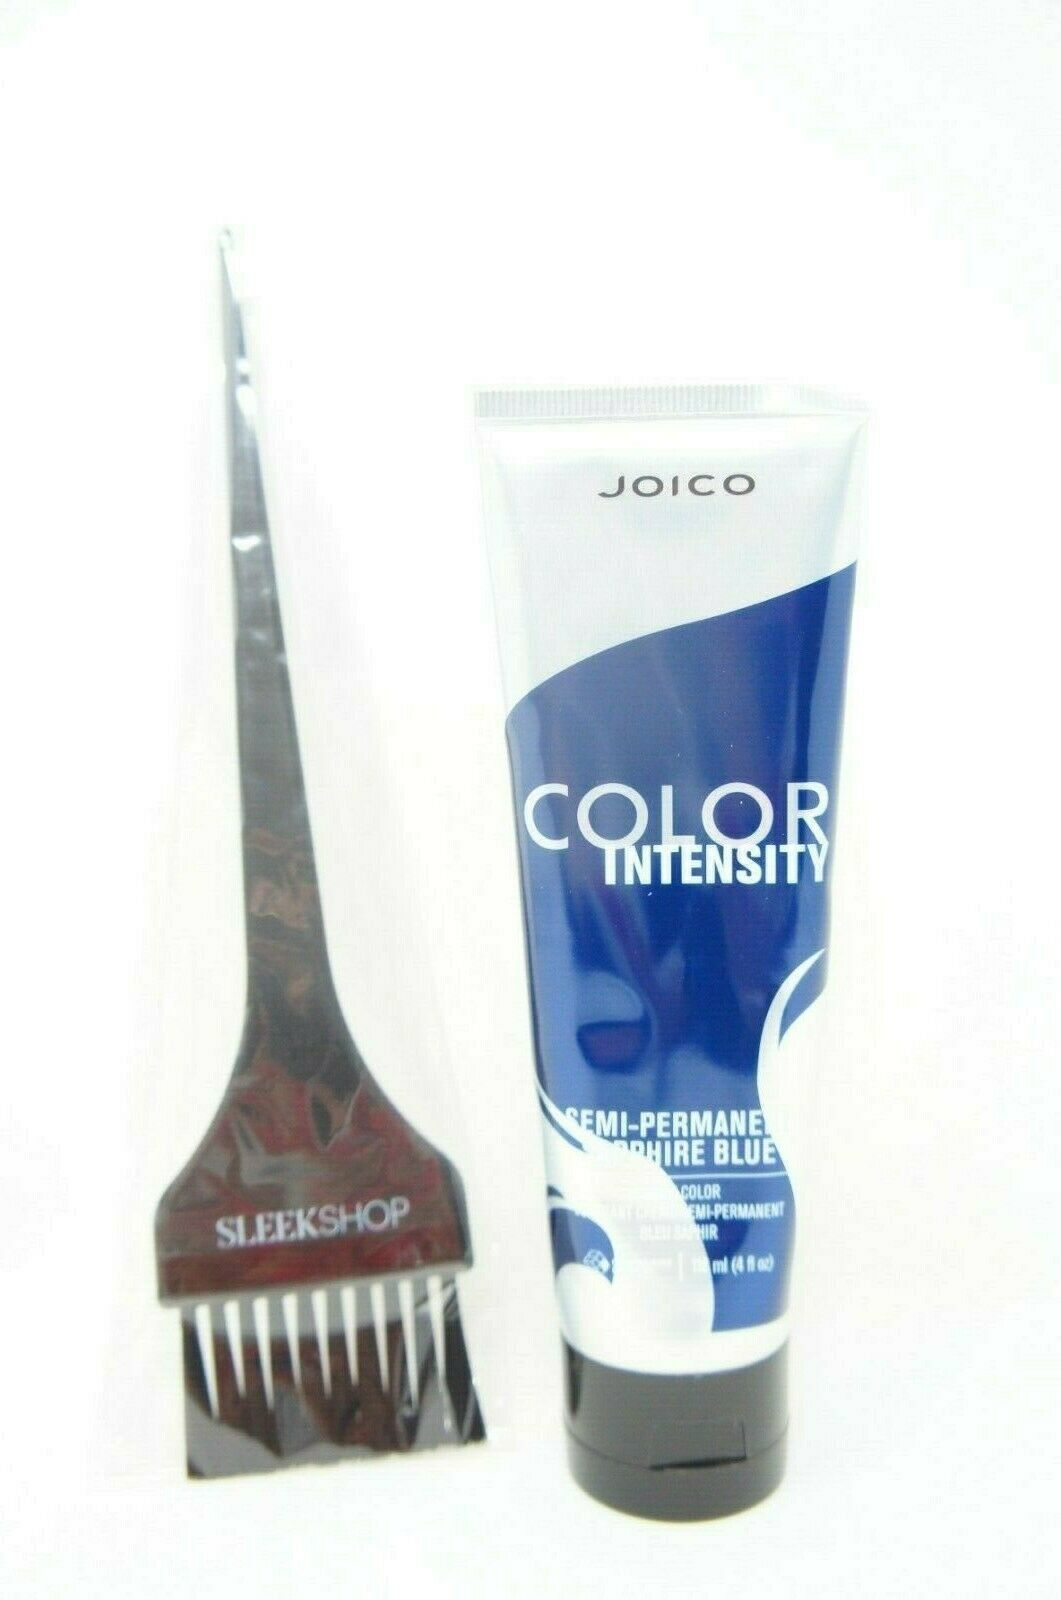 Joico Intensity Semi-Permanent Hair Color, Sapphire Blue 4 oz. w/ BRUSH